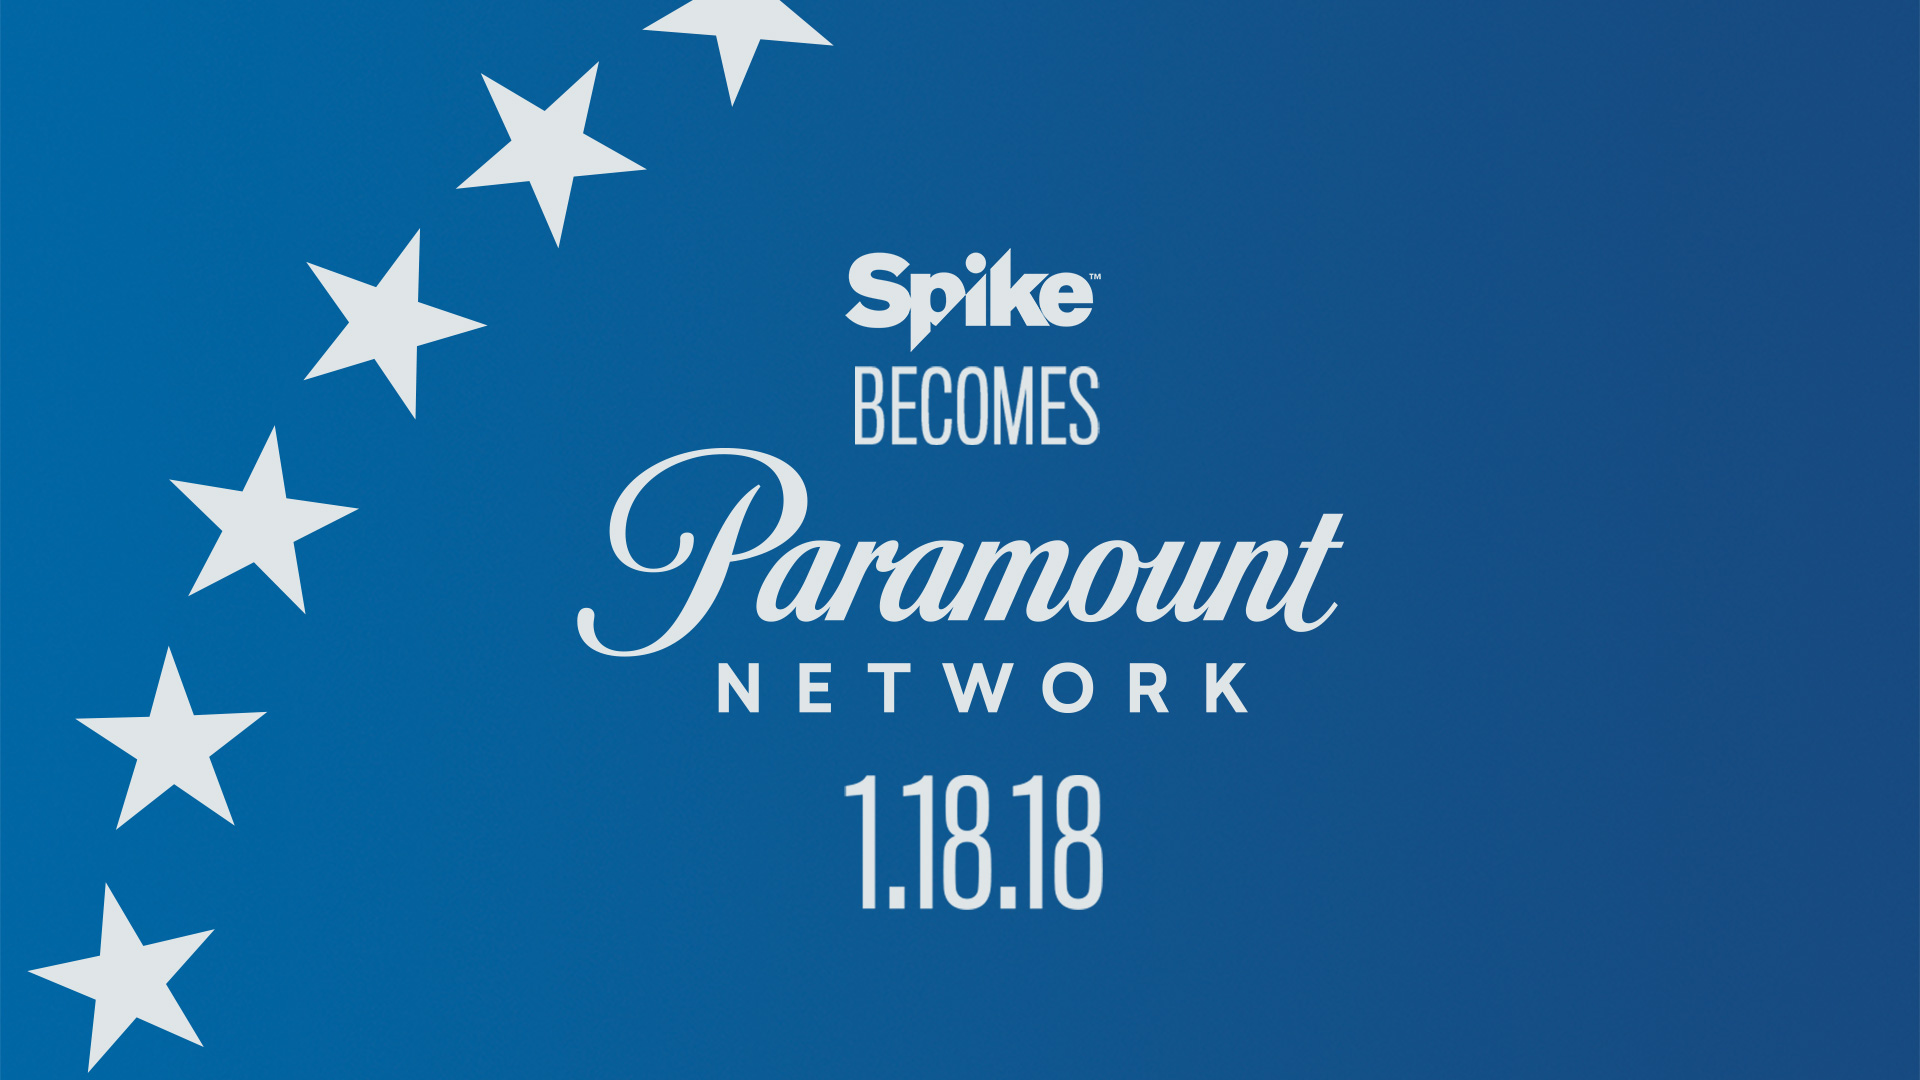 easyTV channel news: Spike becomes Paramount Network